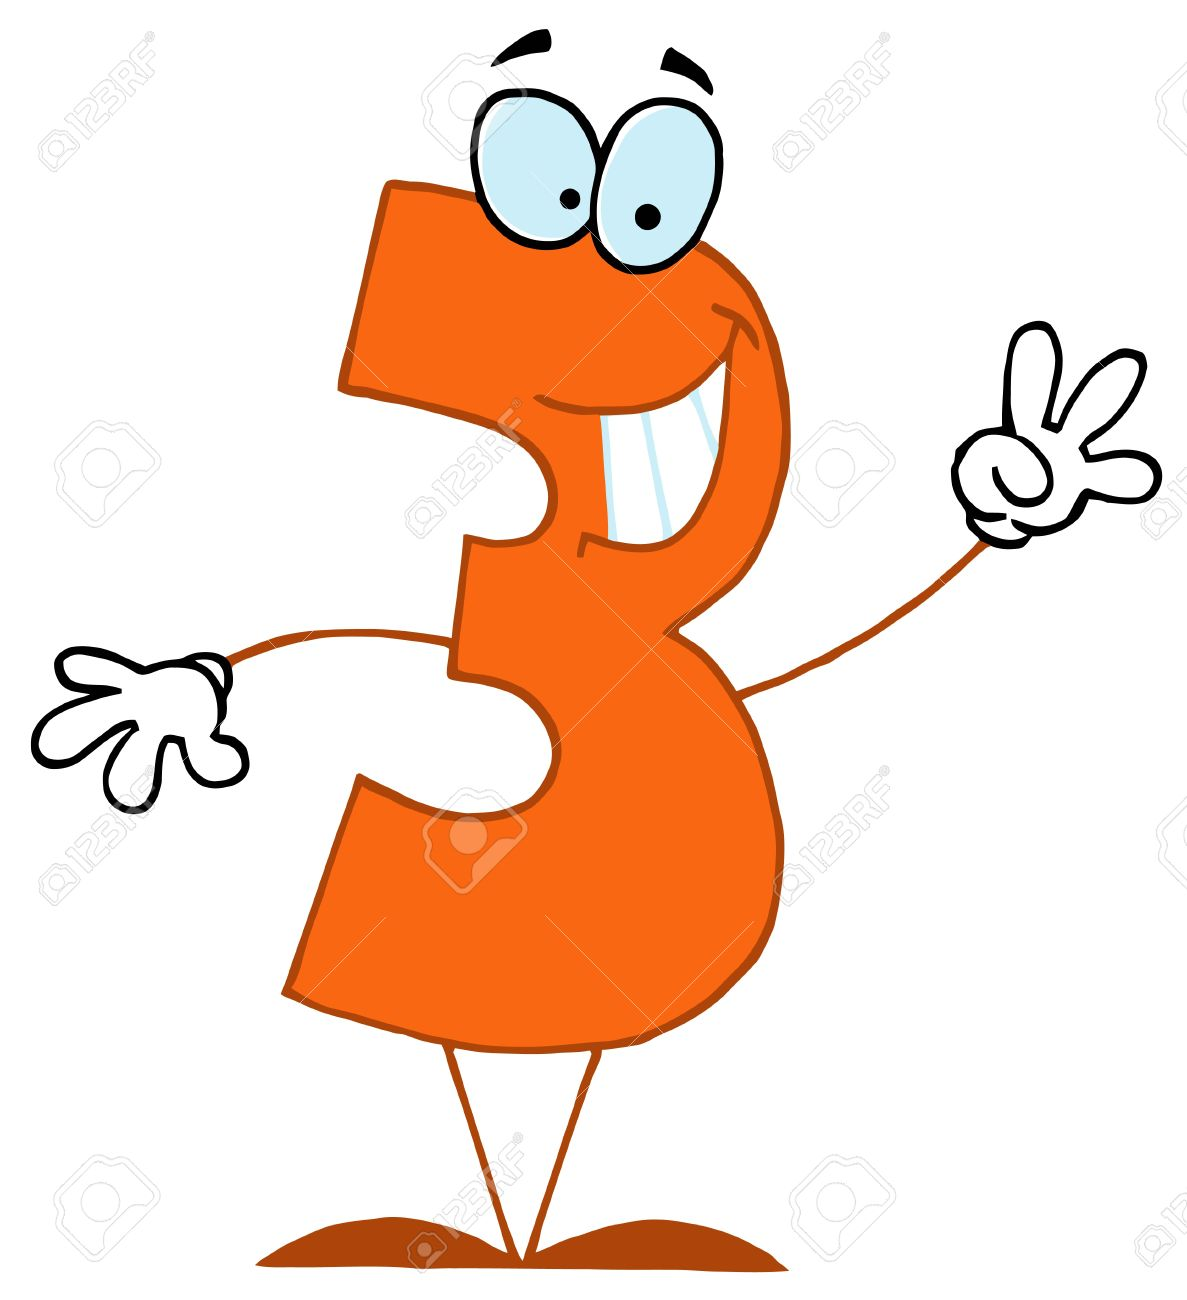 Image result for number 3 cartoon pics